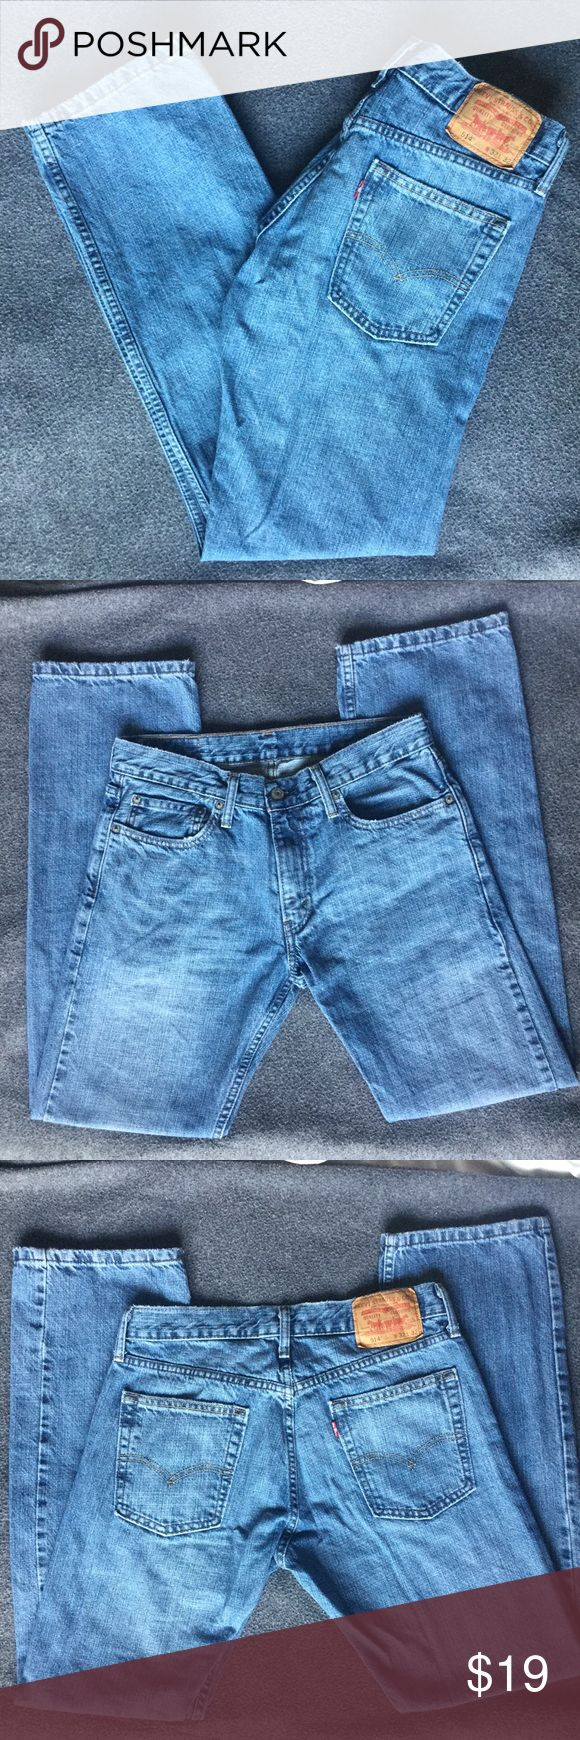 """Levis 514 Slim Straight Jeans Washed Mens Sz 32x32 Levi's 514 Jeans in excellent condition. Only small flaws found on front pockets and bottom of legs (see pictures, they actually give the jeans some """"character"""" lol). Men's size 32 x 32. 100% Cotton. Machine wash. Blue denim color, moderately washed. Remember to bundle up and save more, so check my closet for more hidden treasures! Levi's Jeans Slim Straight"""